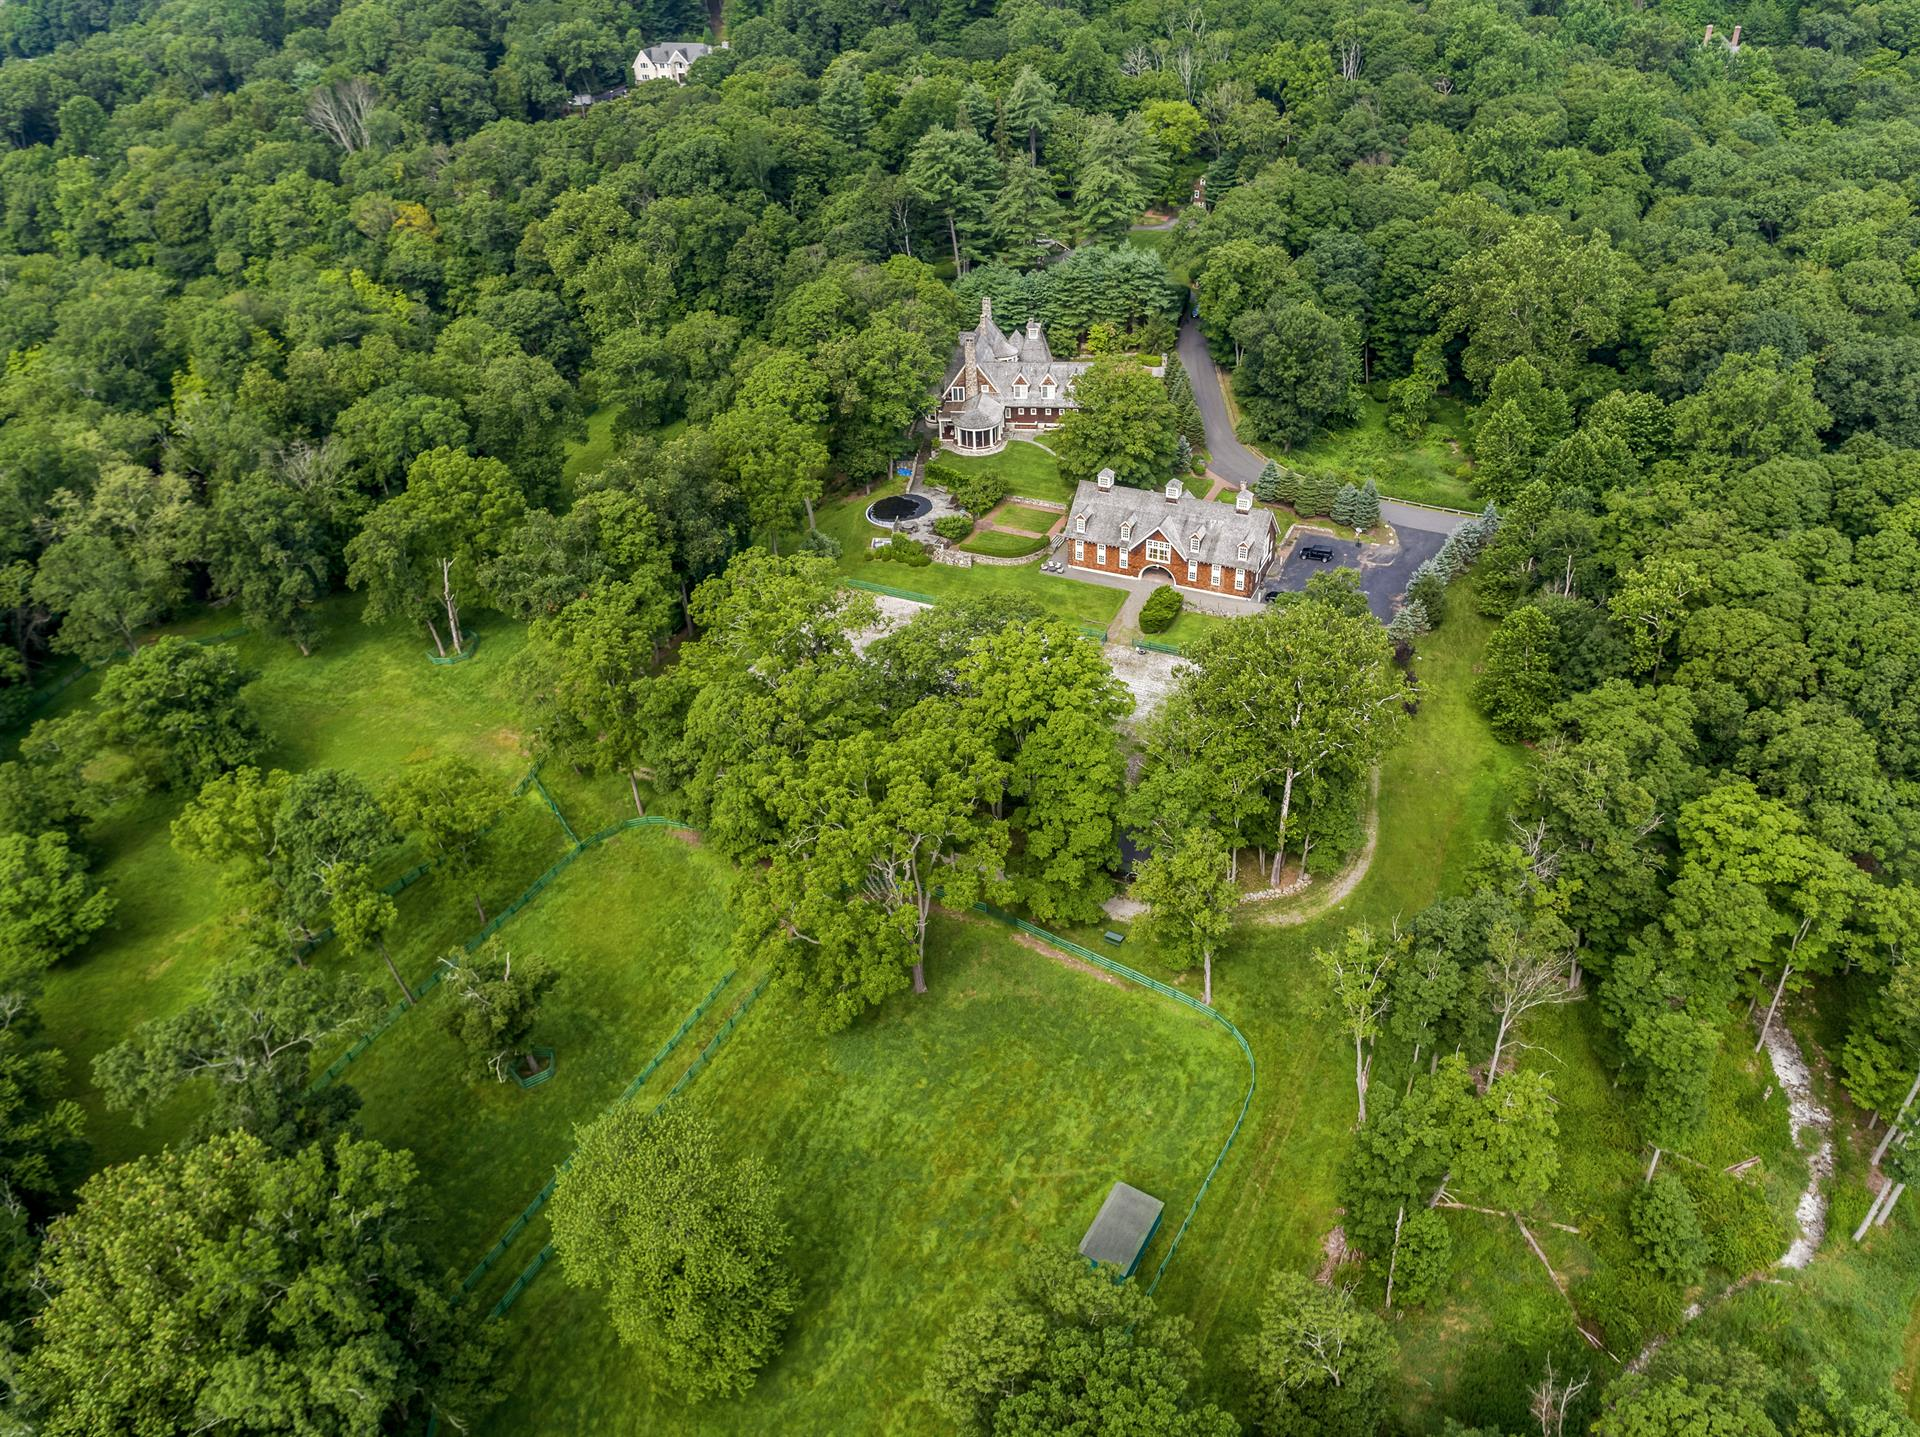 This riverfront estate's outstanding amenities include a nine-stall barn, jumping area, paddocks, and riding trails along New Jersey's Ramapo River.